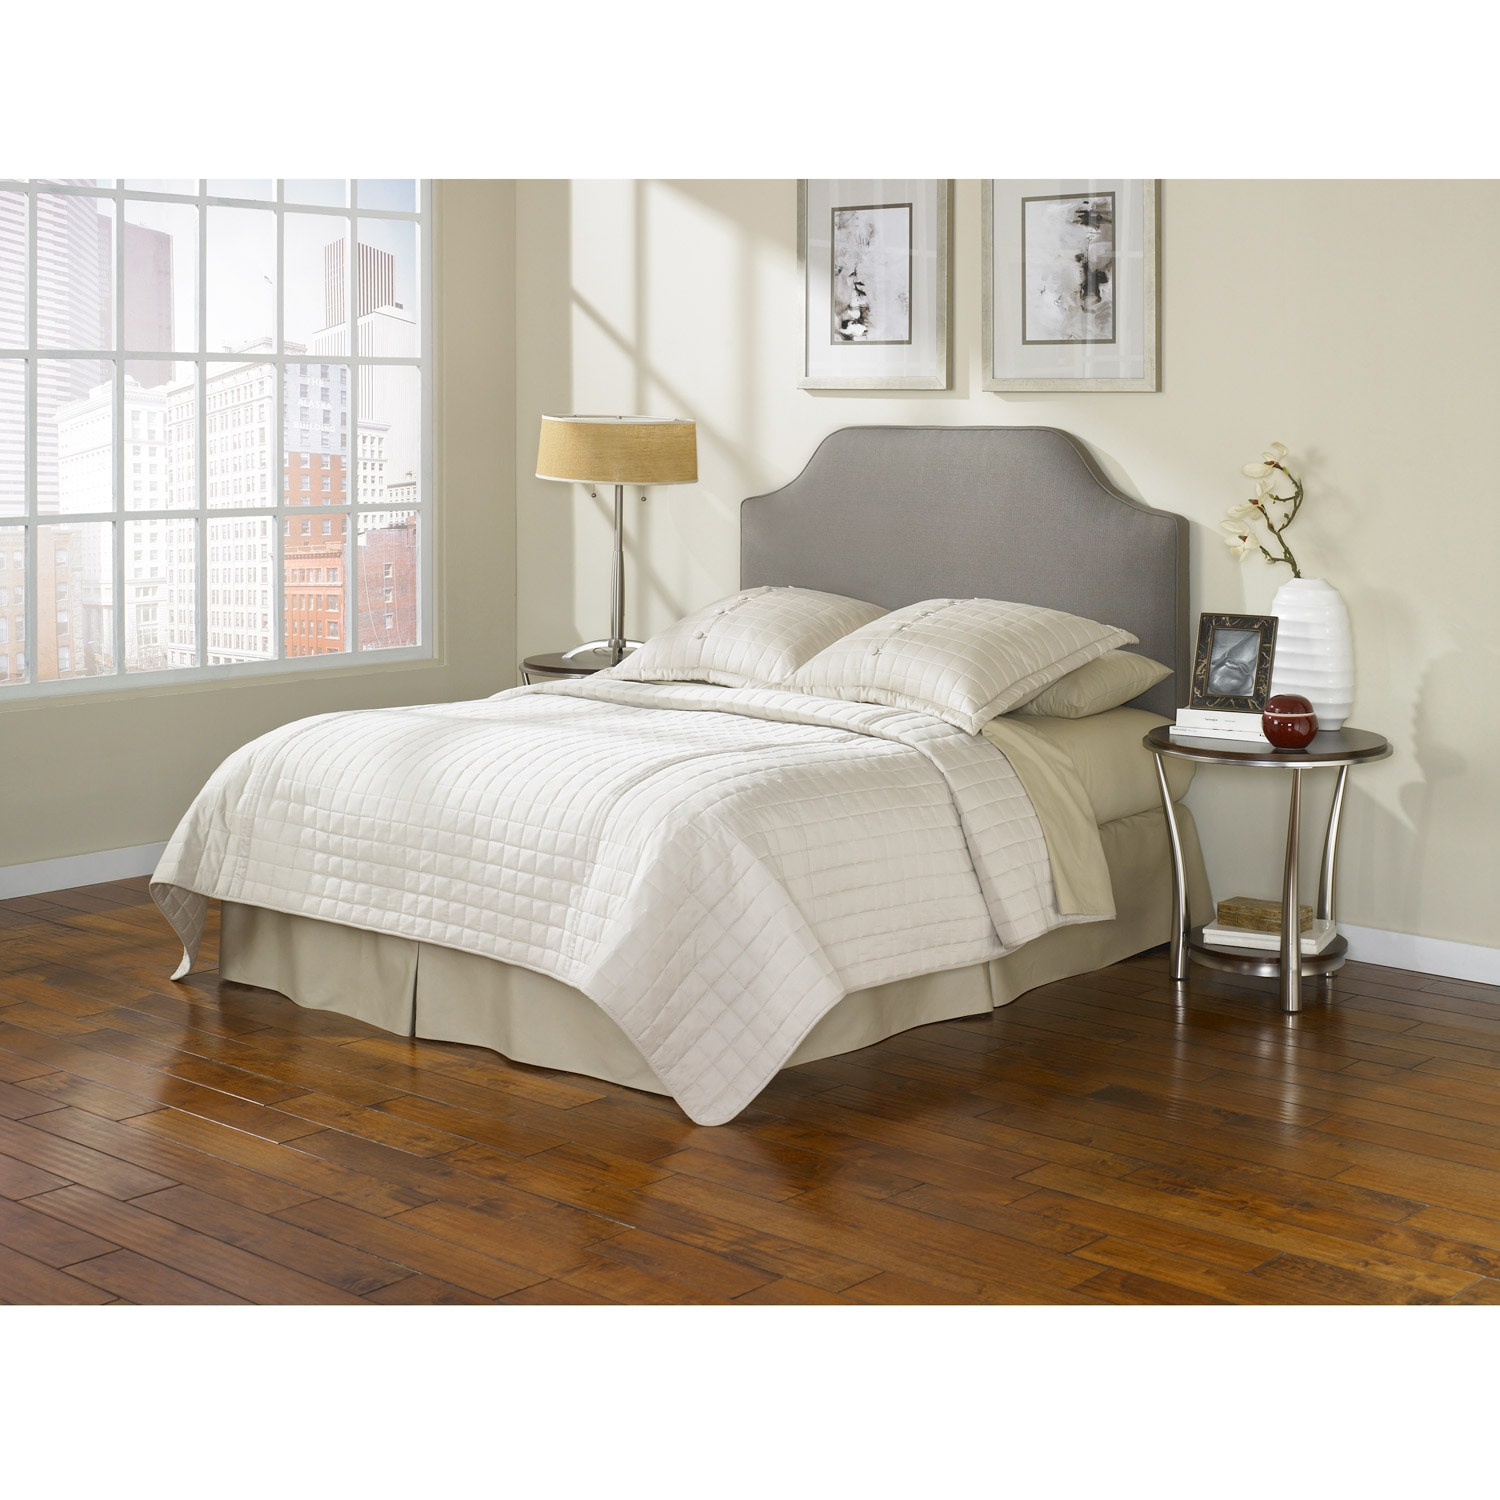 Fashion Bed Bordeaux Taupe Queen Full Size Headboard